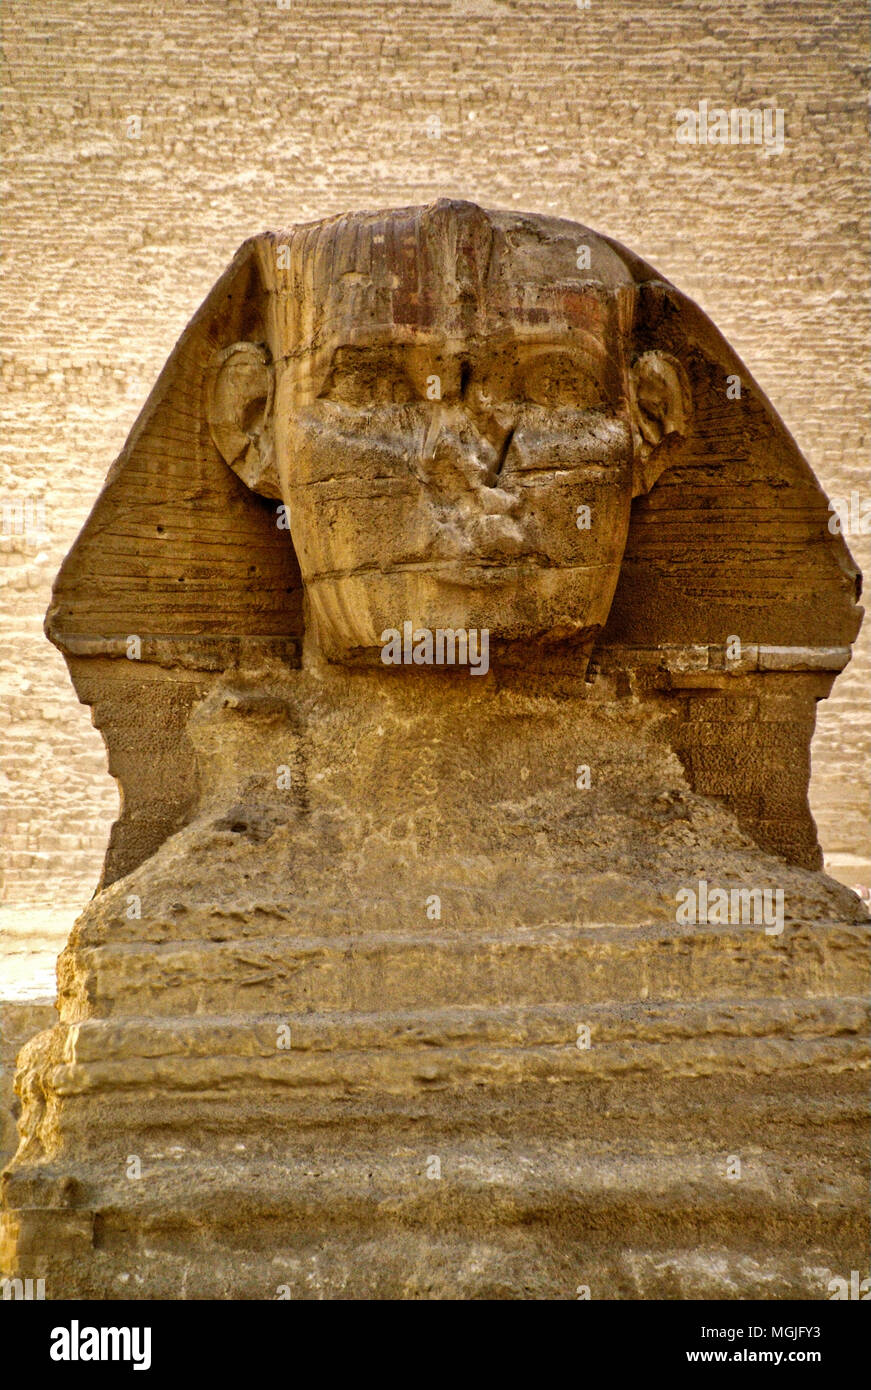 The Sphinx with the stones of the Pyramid of Khafre (Chephren).showing behind.   Egypt, Cairo, Giza - Stock Image